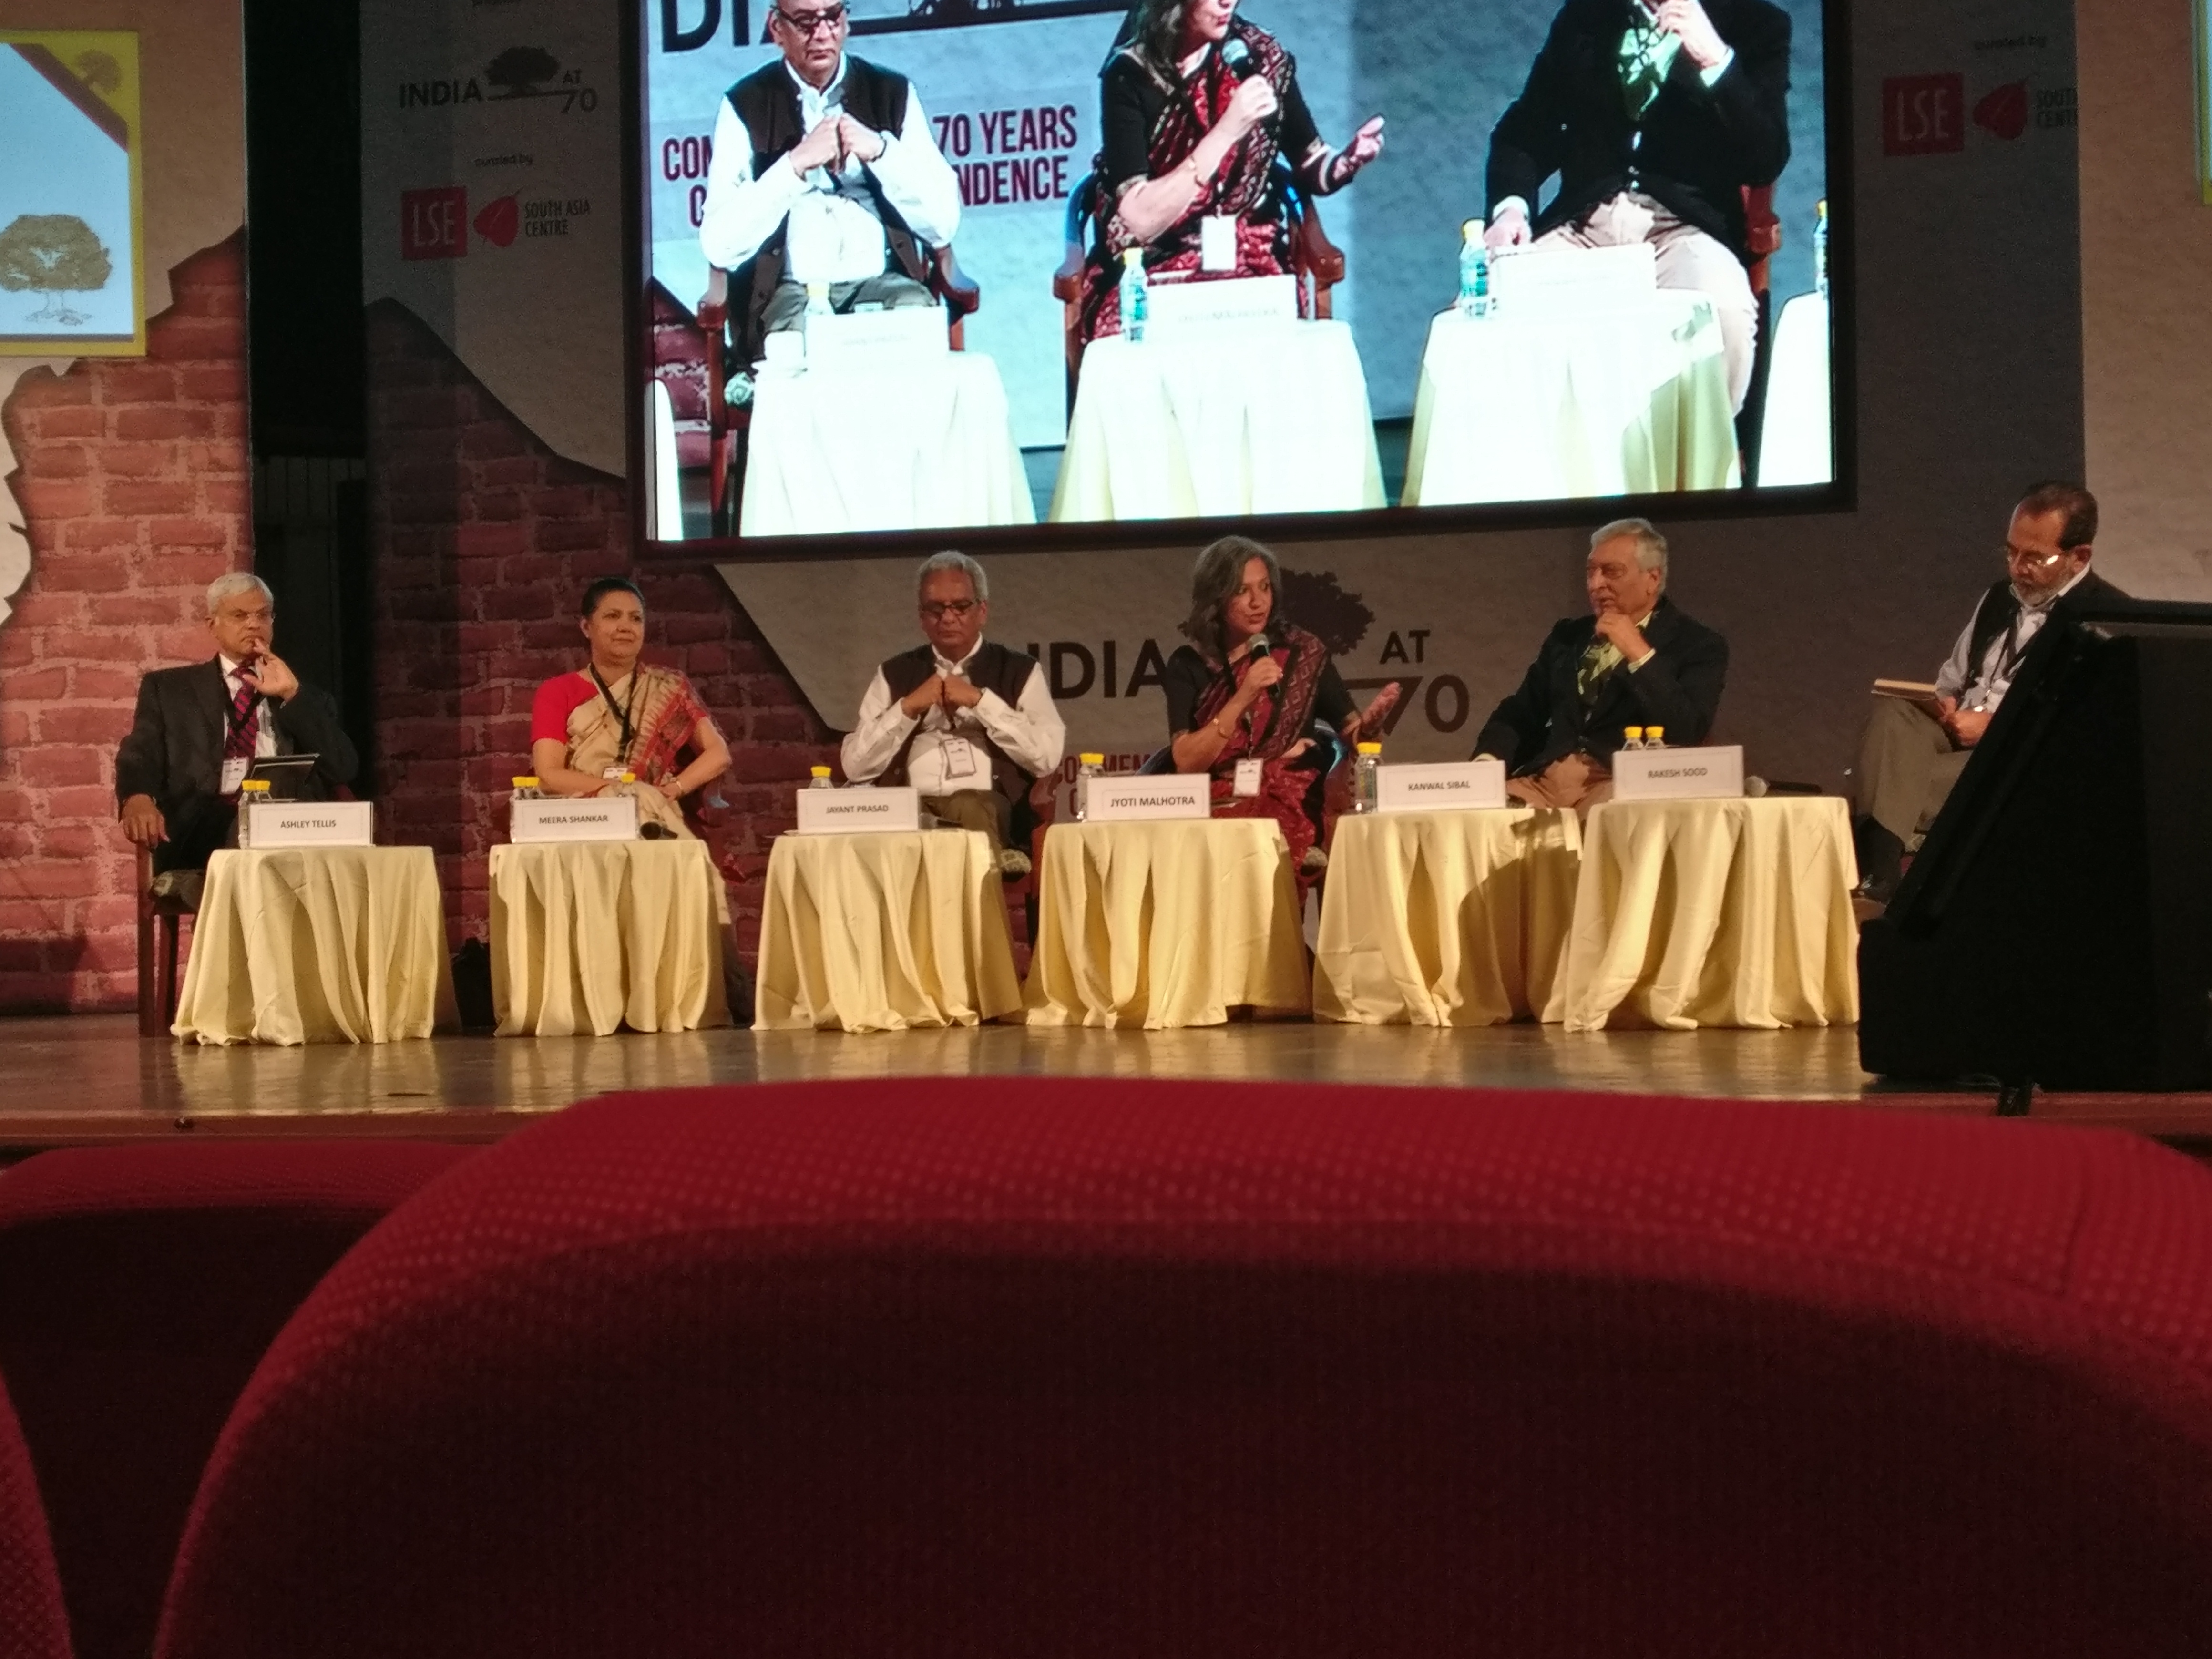 From left: Ashley J Tellis, Meera Shankar, Jayant Prasad, Jyoti Malhotra (moderator), Kanwal Sibal and Rakesh Sood.